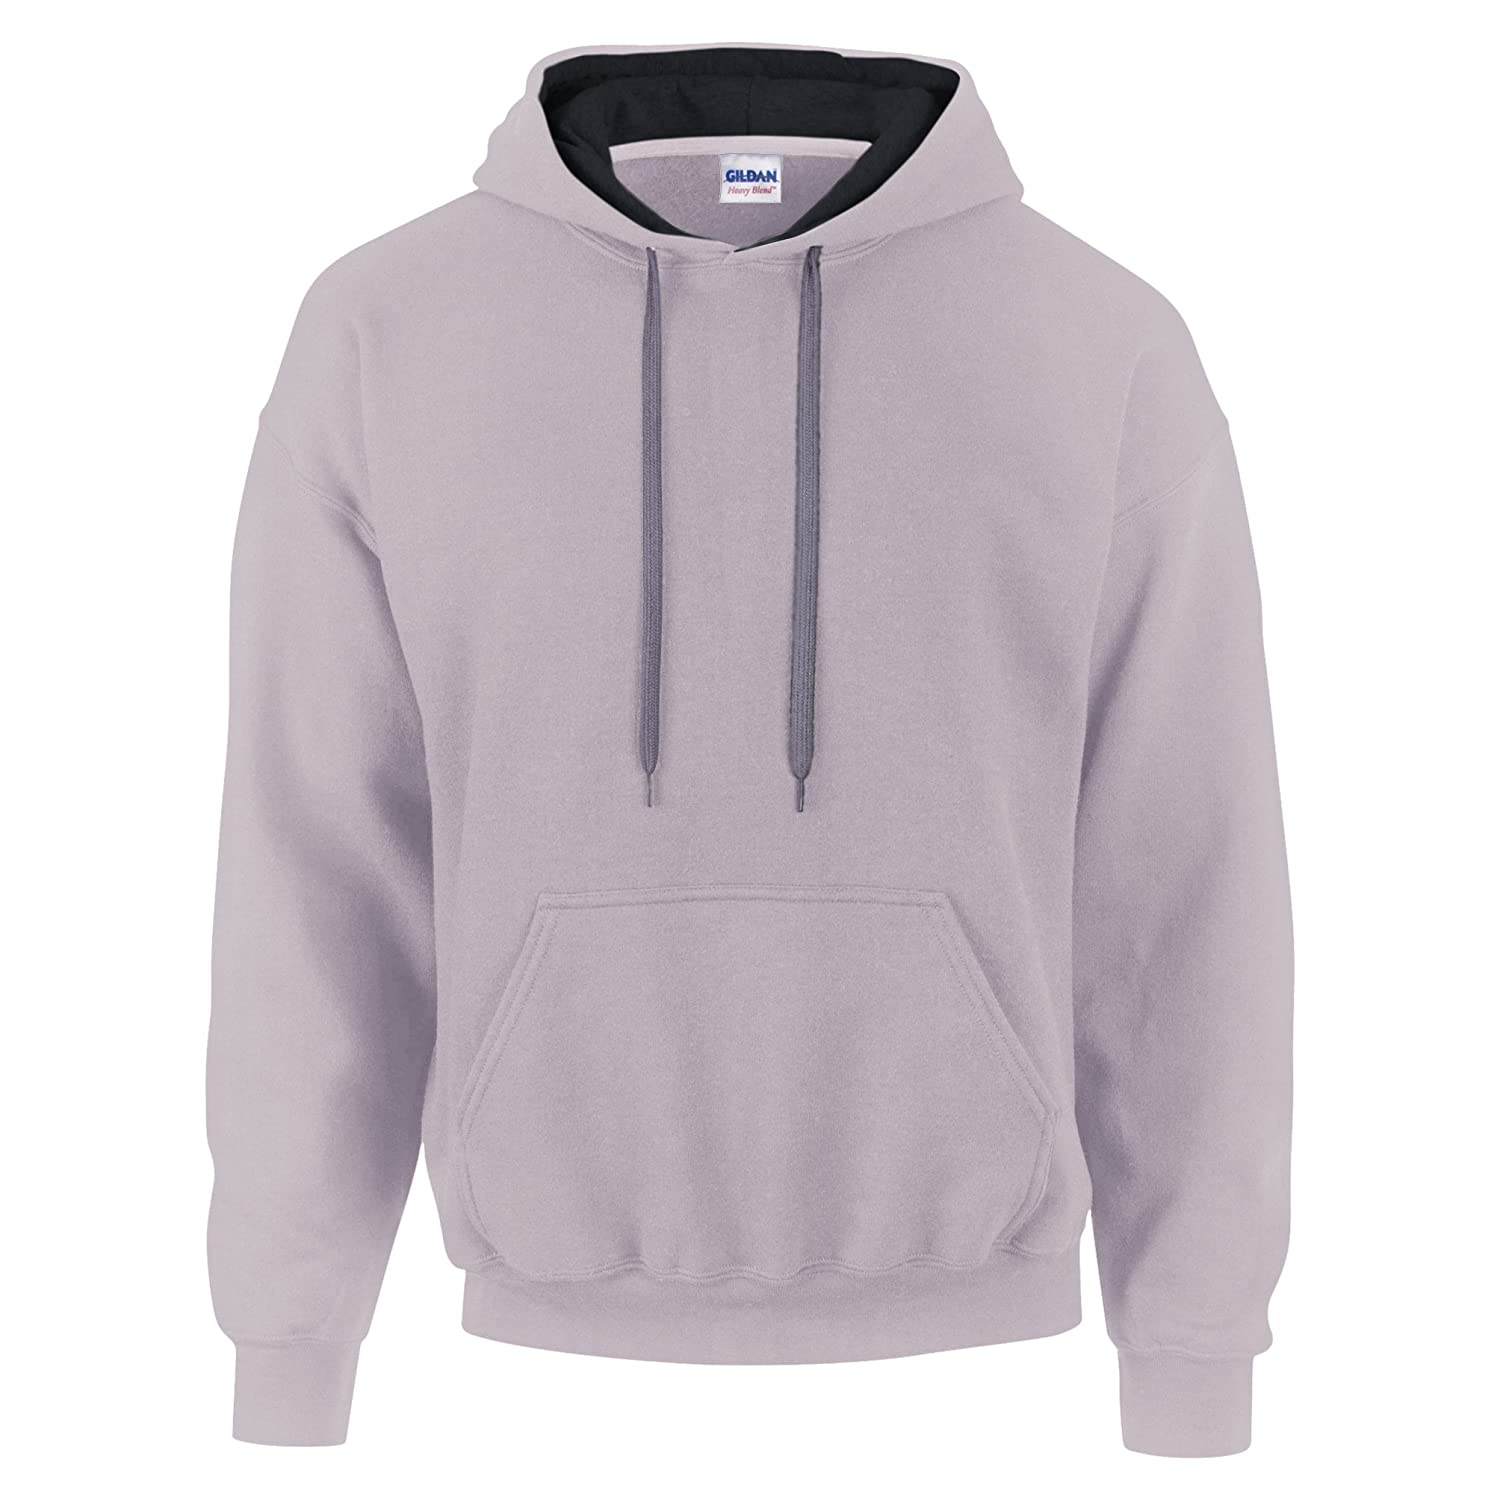 Gildan Adult Heavy BlendTM Contrast Hooded Sweatshirt M25239